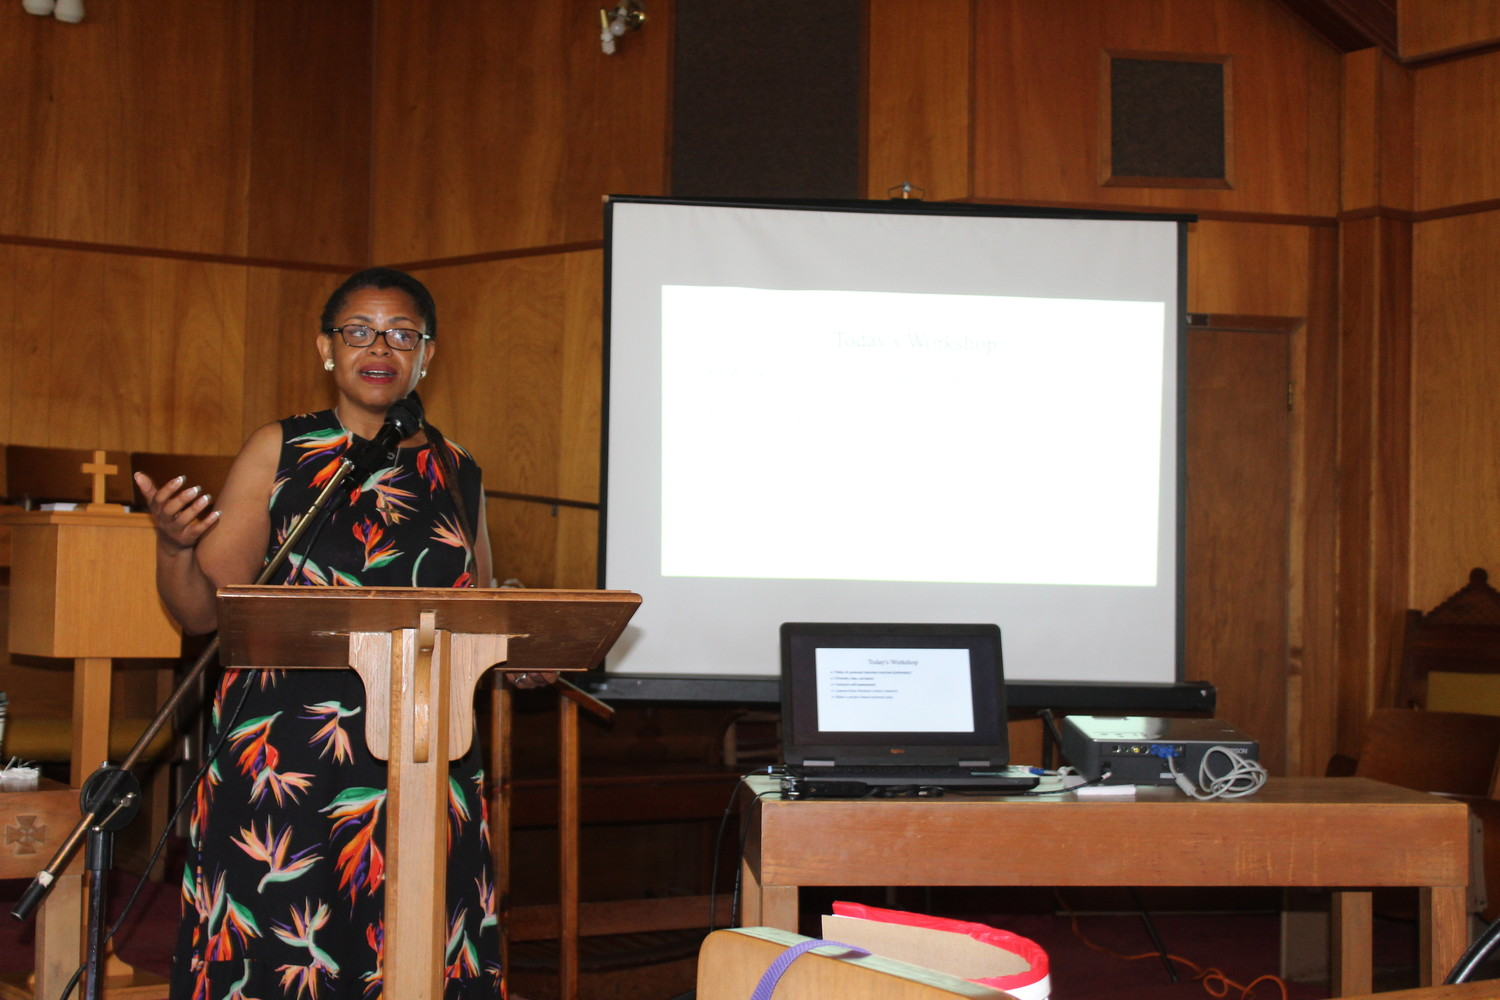 Dr. Andrea Roberts from Texas A & M University explained about the Texas Freedom Colonies Project to the audience at the Providence Baptist Church. Over 30 people heard the goals and plans for the project after an introduction by Judge David Bird.